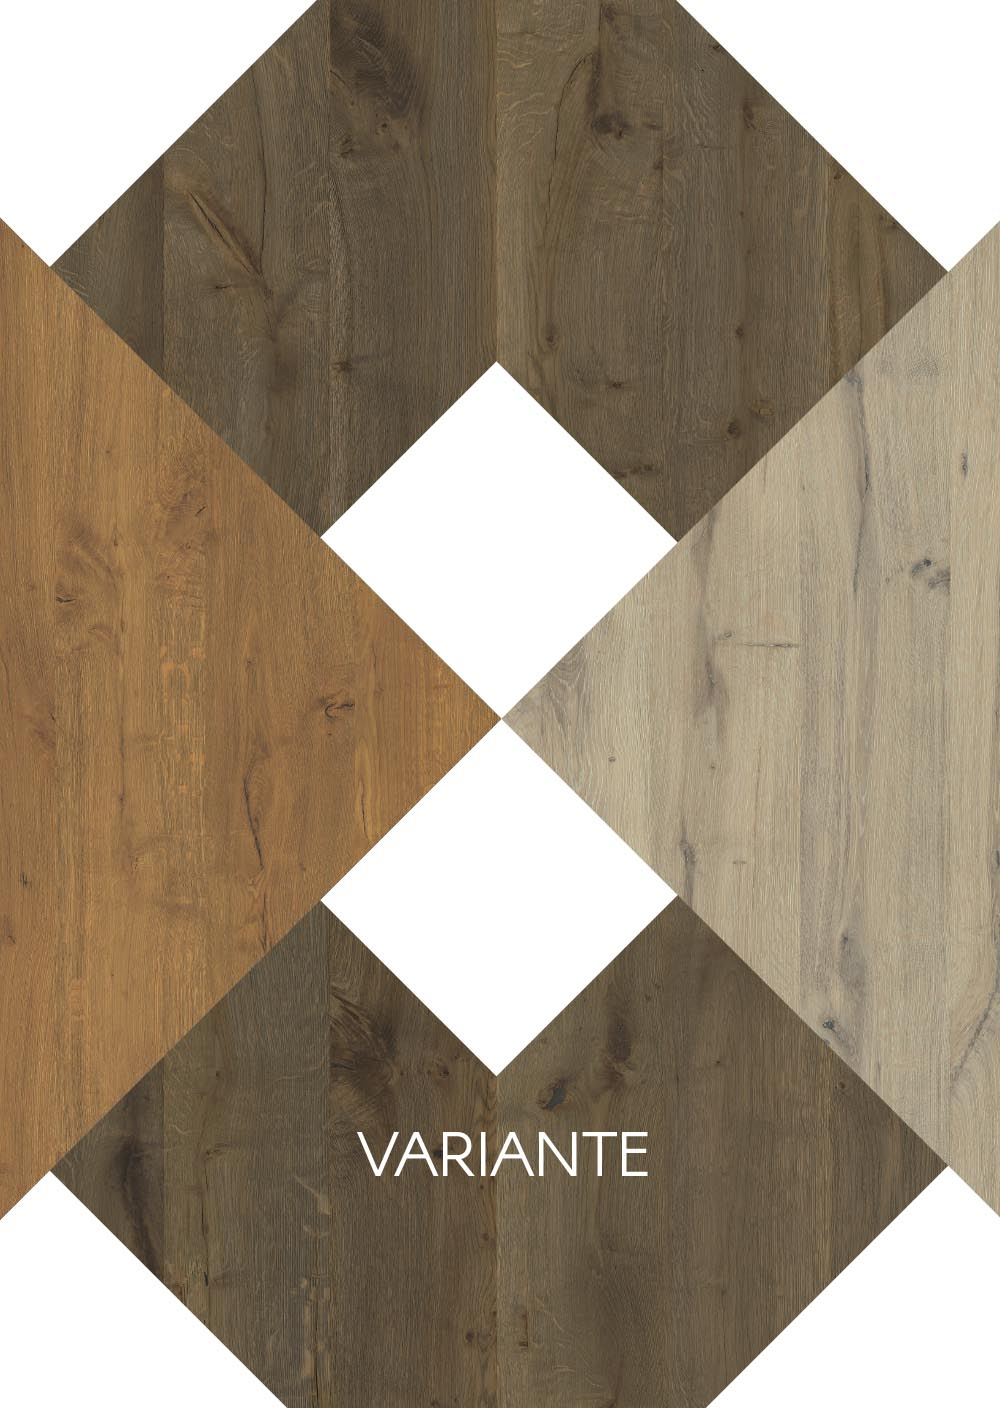 Forestry Timber Varainte Collection Textured Catalogue - European Oak floors